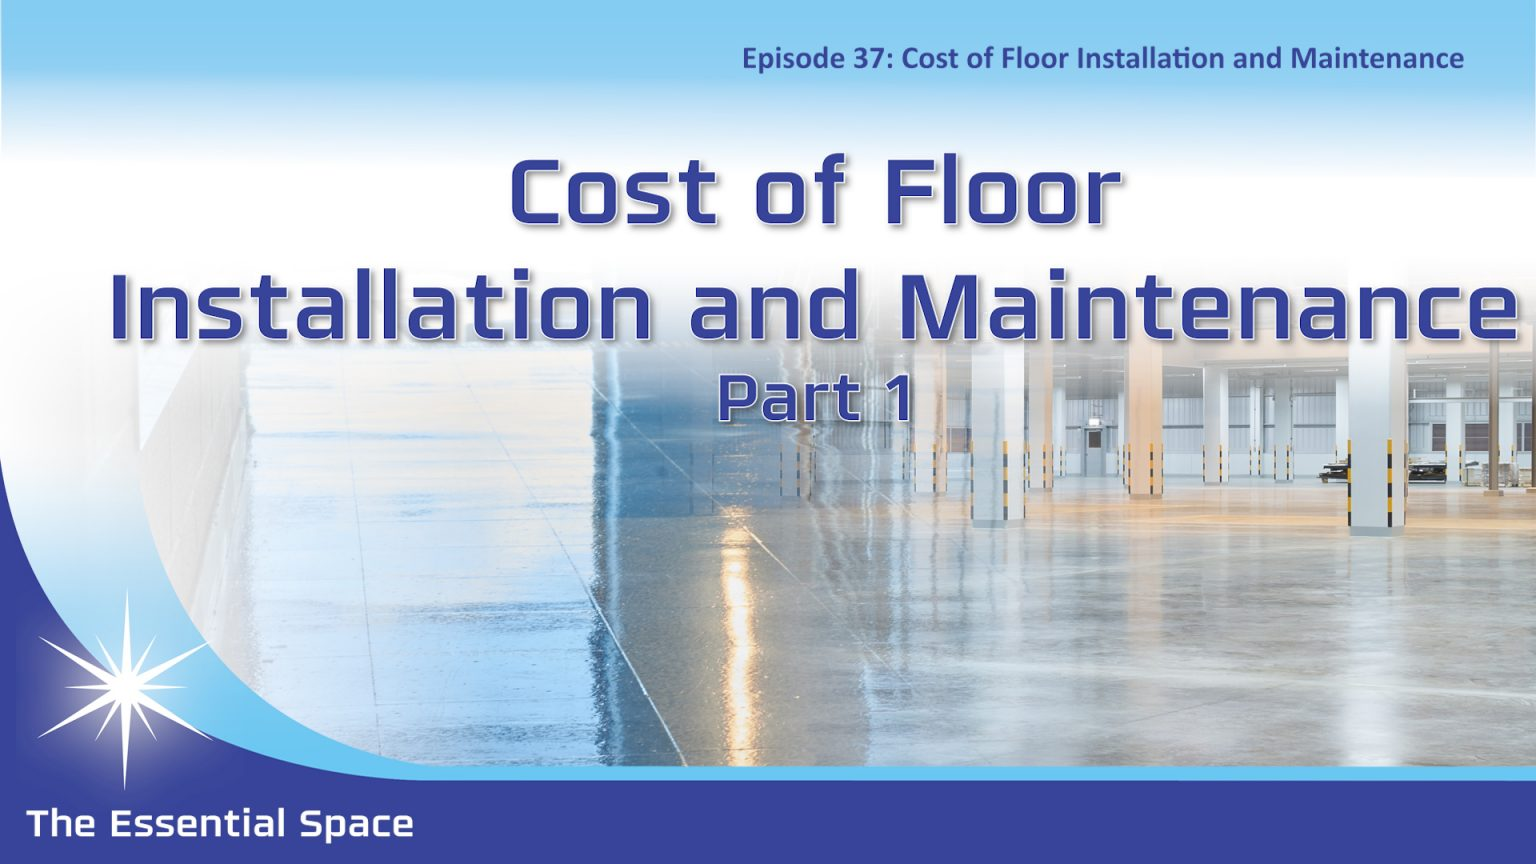 Podcast 37 Cost of Floor Installation and Maintenance Part 1